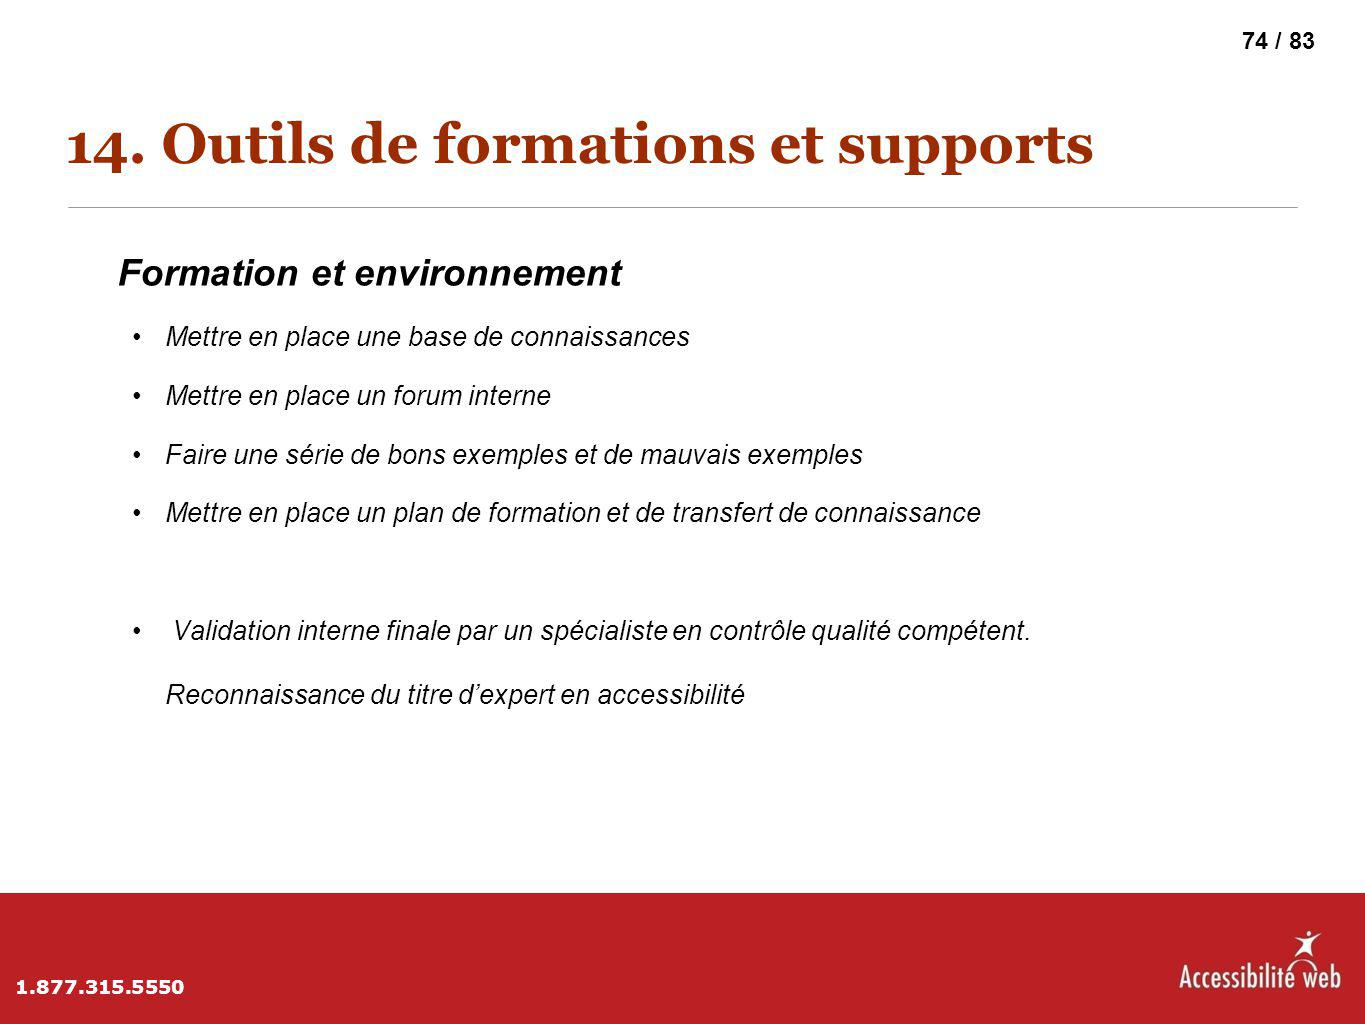 14. Outils de formations et supports